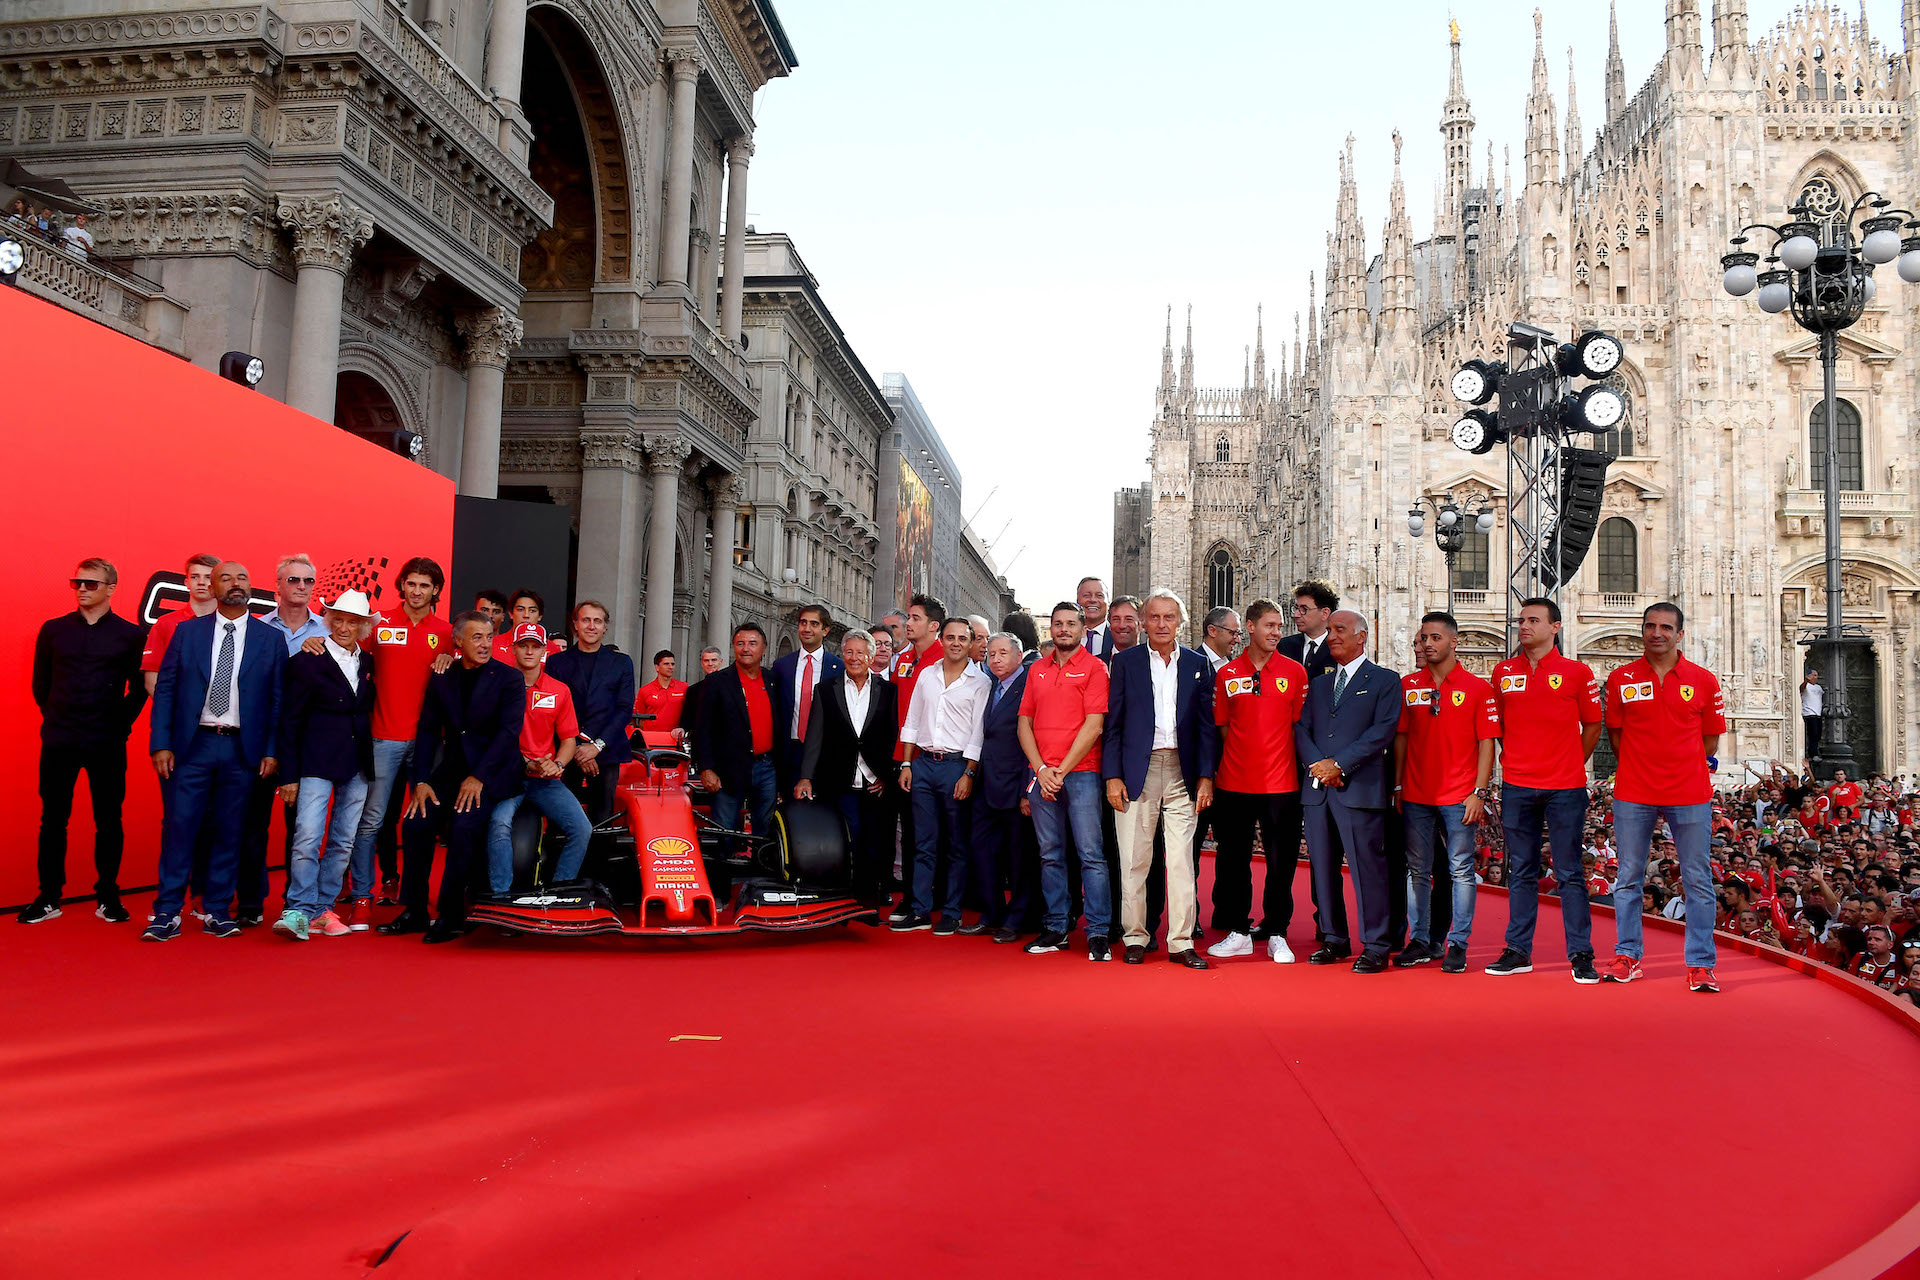 2019 Ferrari 90 Years celebration at Milan | 4 Sept 2019 website 11.jpg